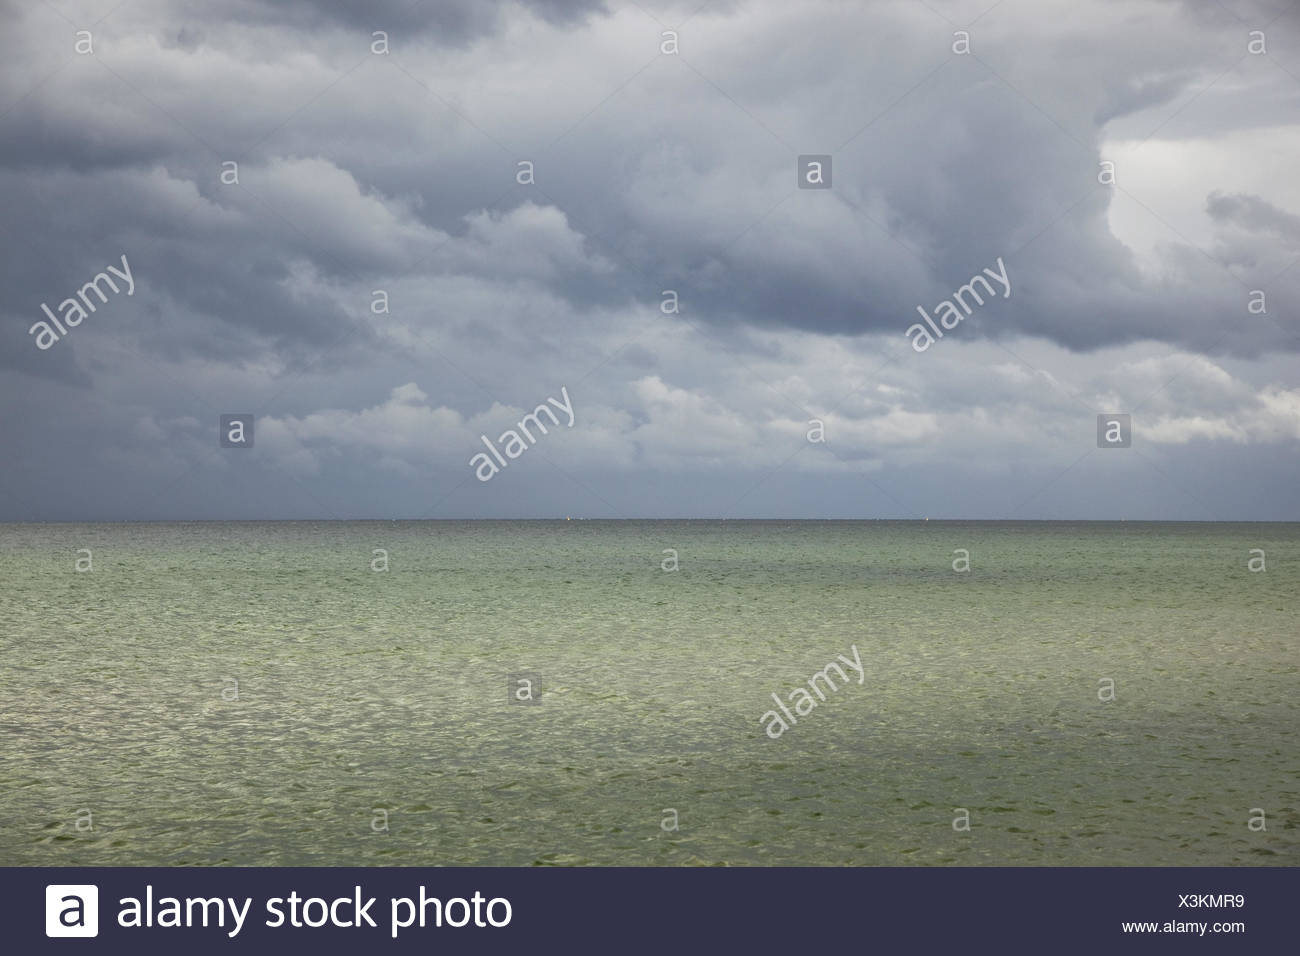 The Baltic Sea, cloudy sky, - Stock Image